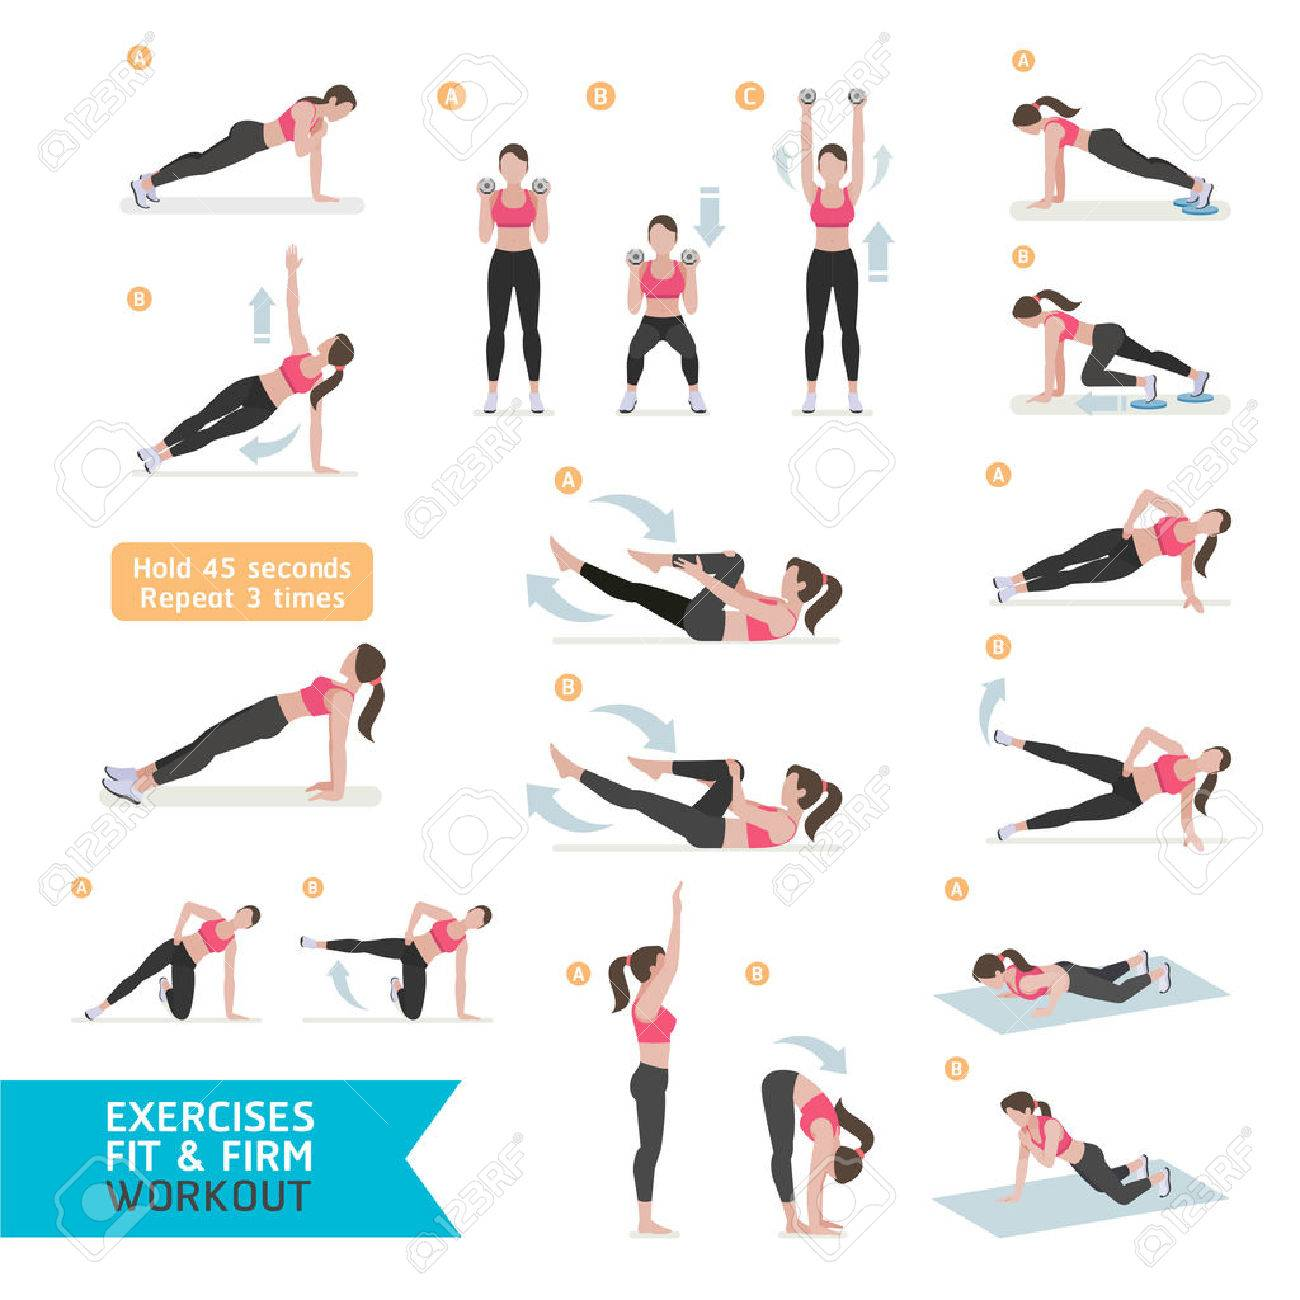 exercice fitness femme